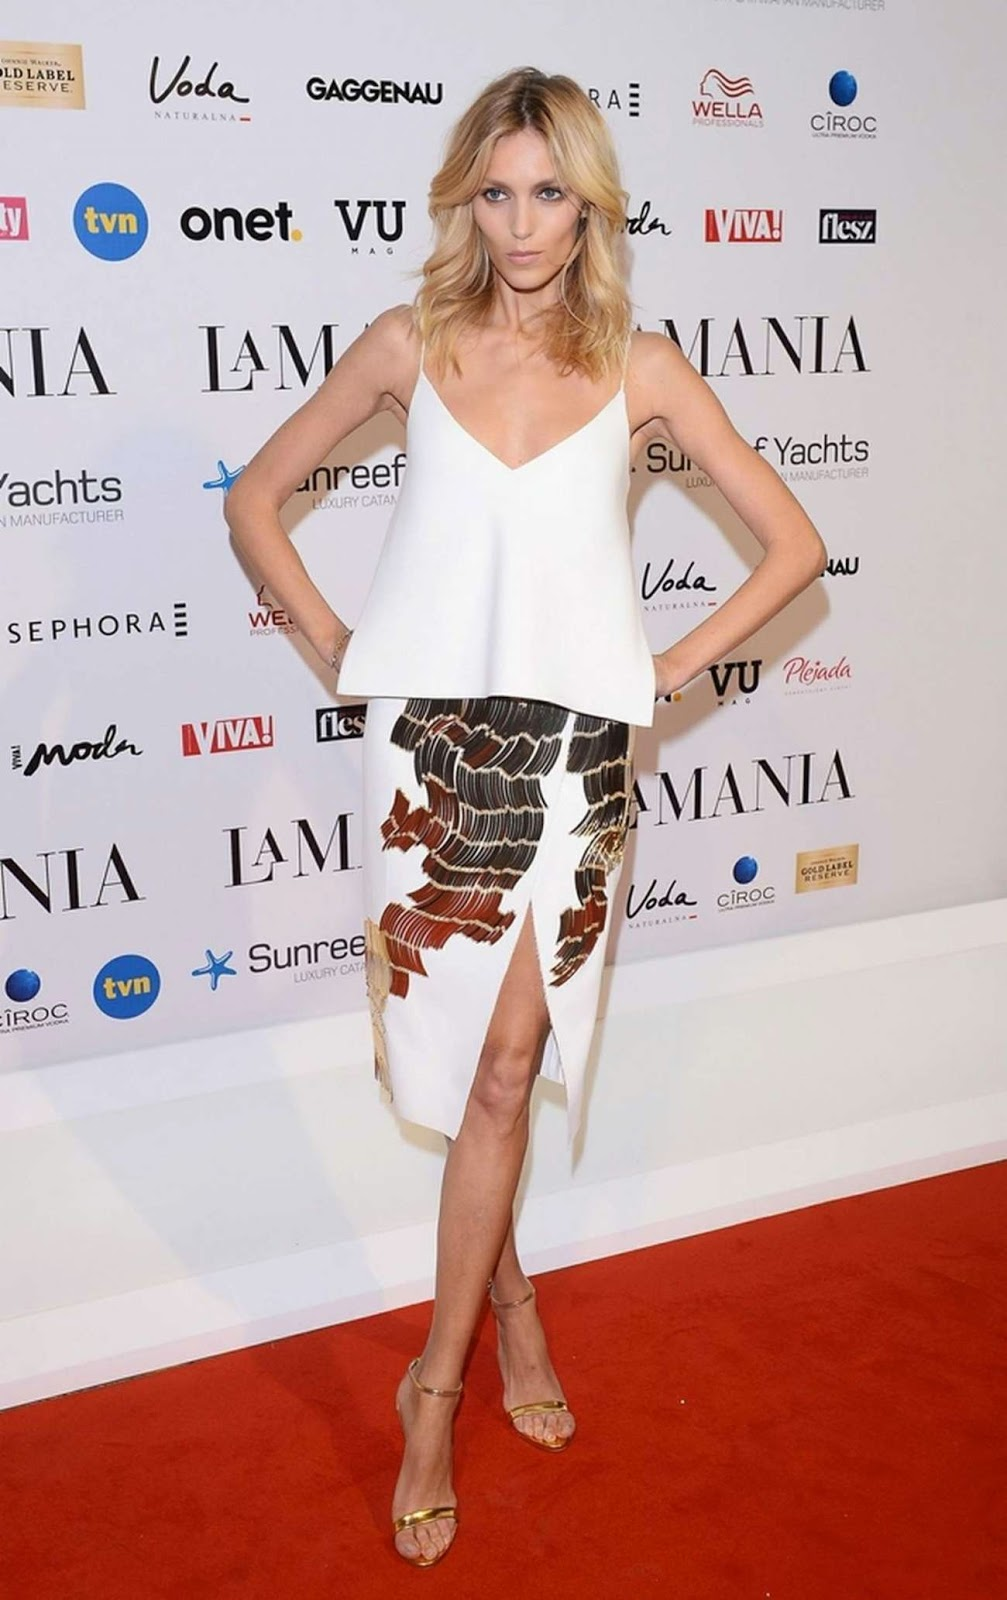 Anja Rubik is sexy in white at the La Mania Fashion Show in Warsaw